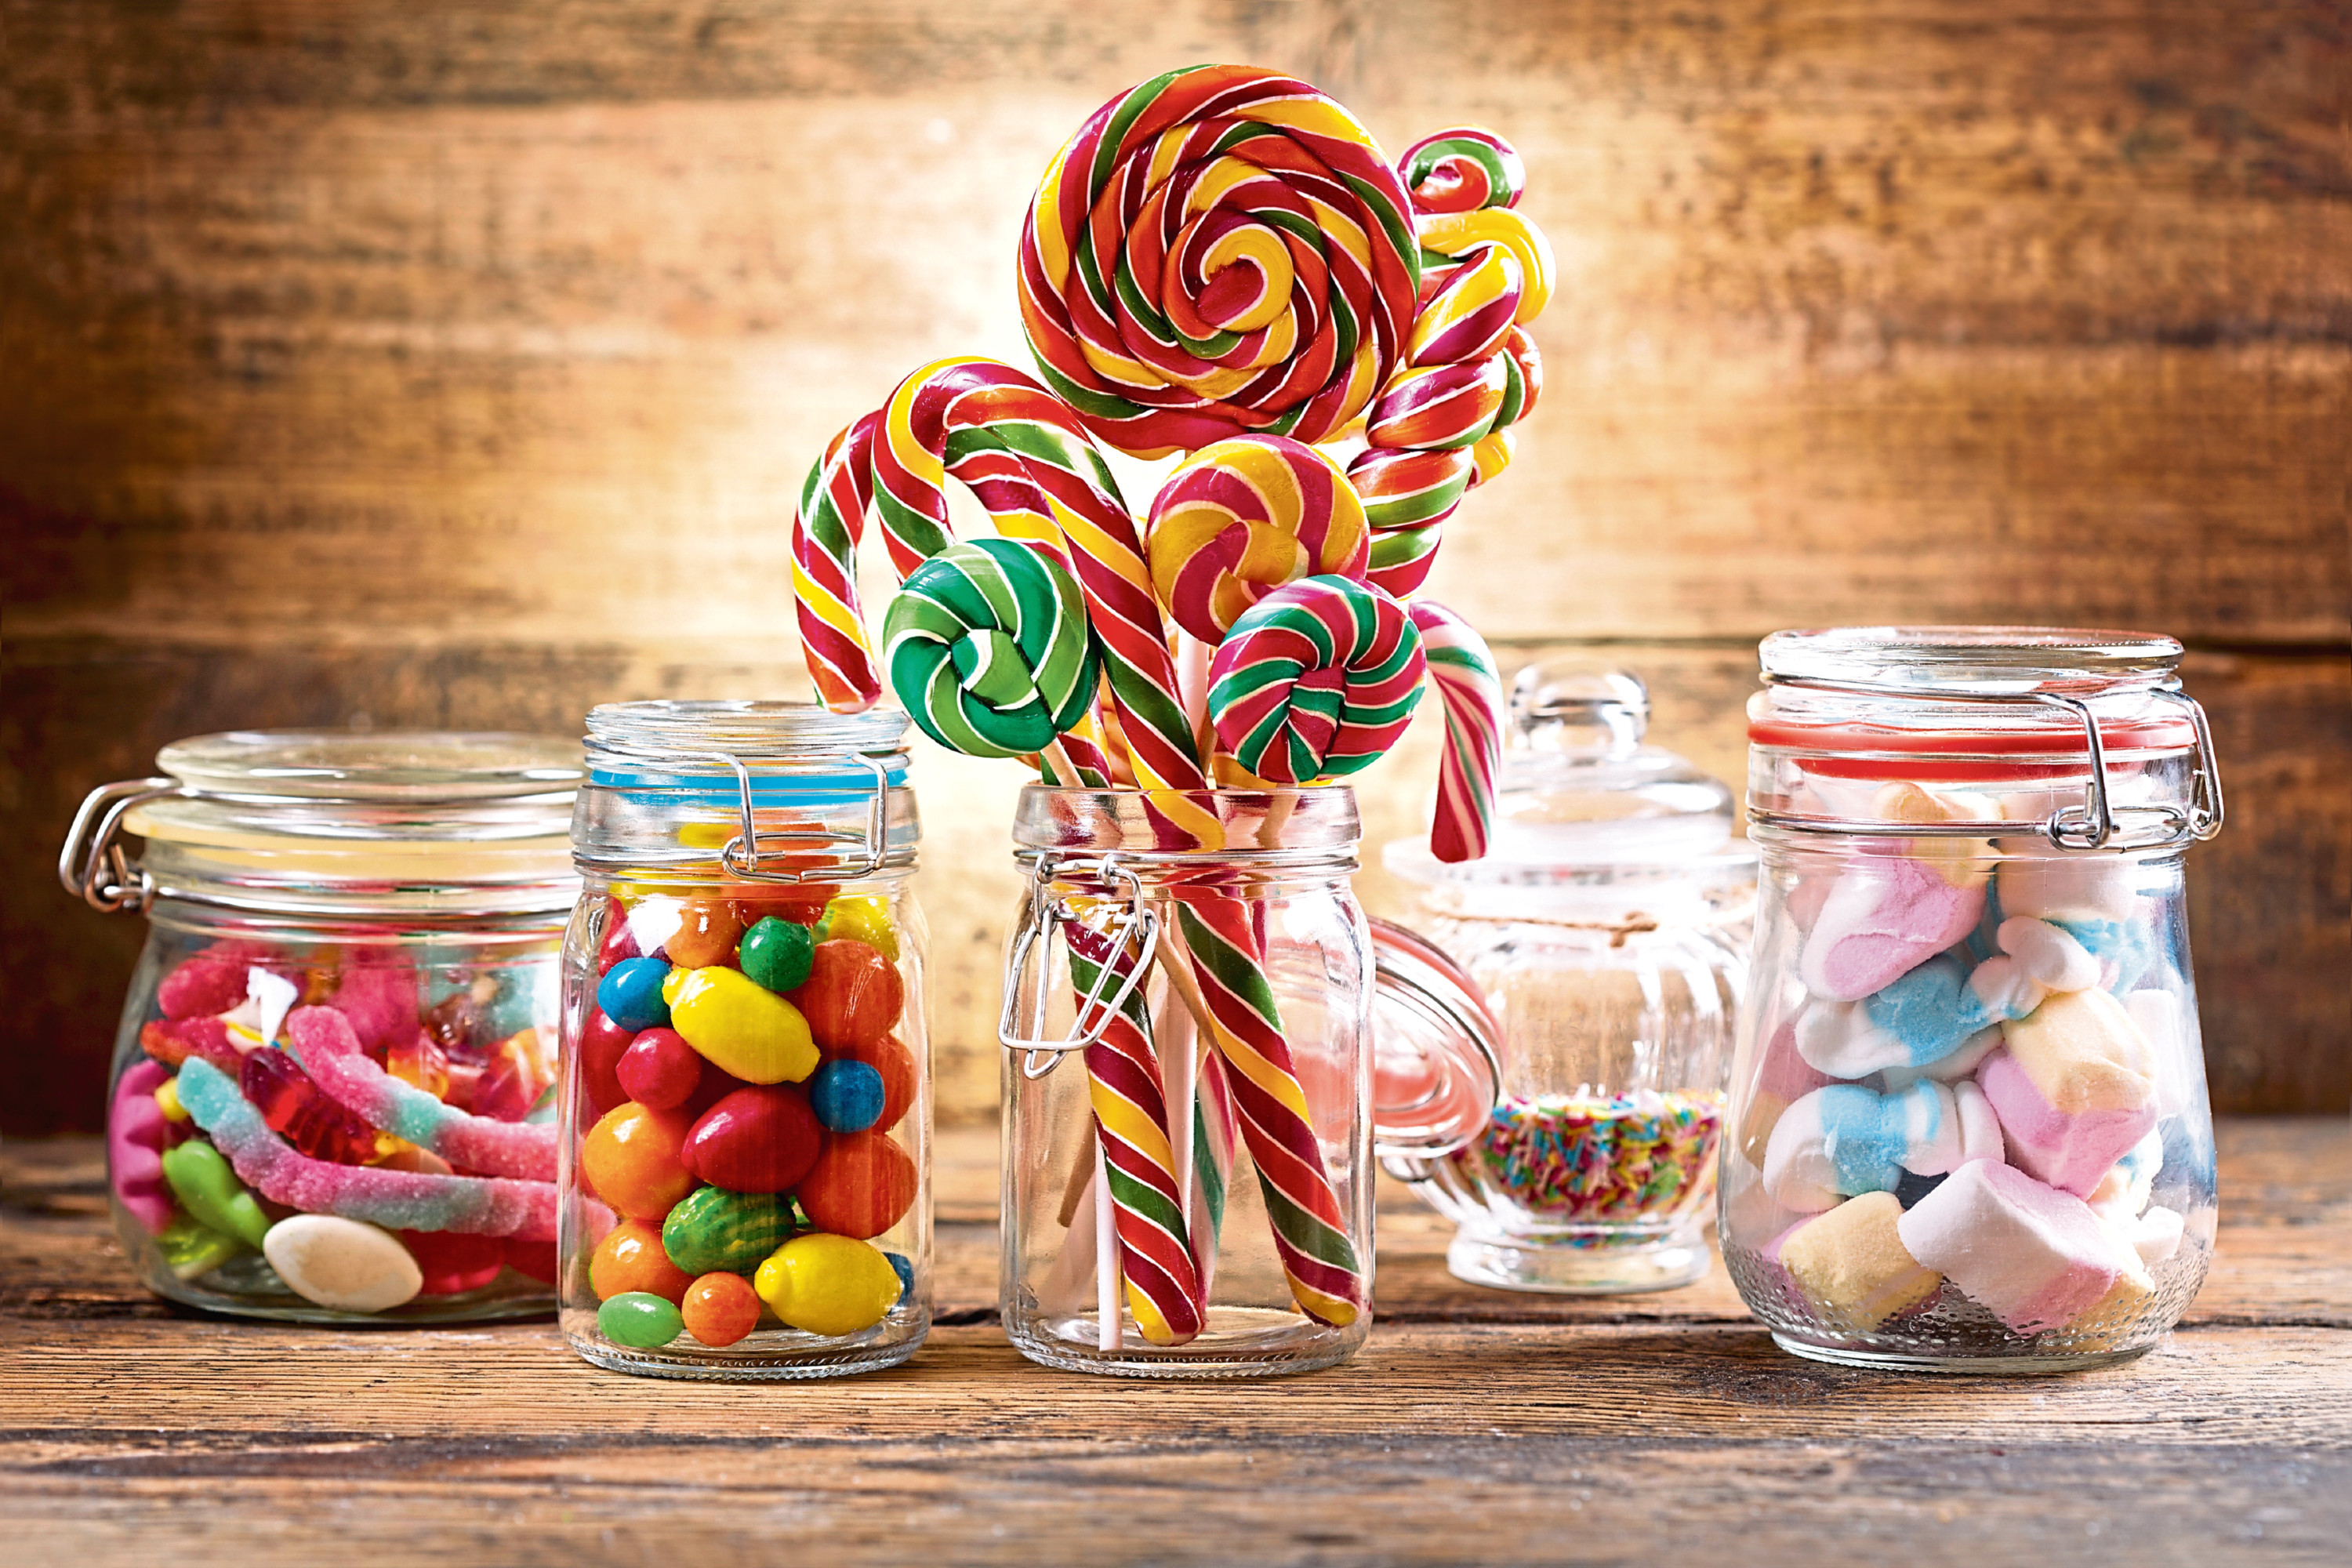 Sweet snacks are far more widely available than healthier options. (Stock image).